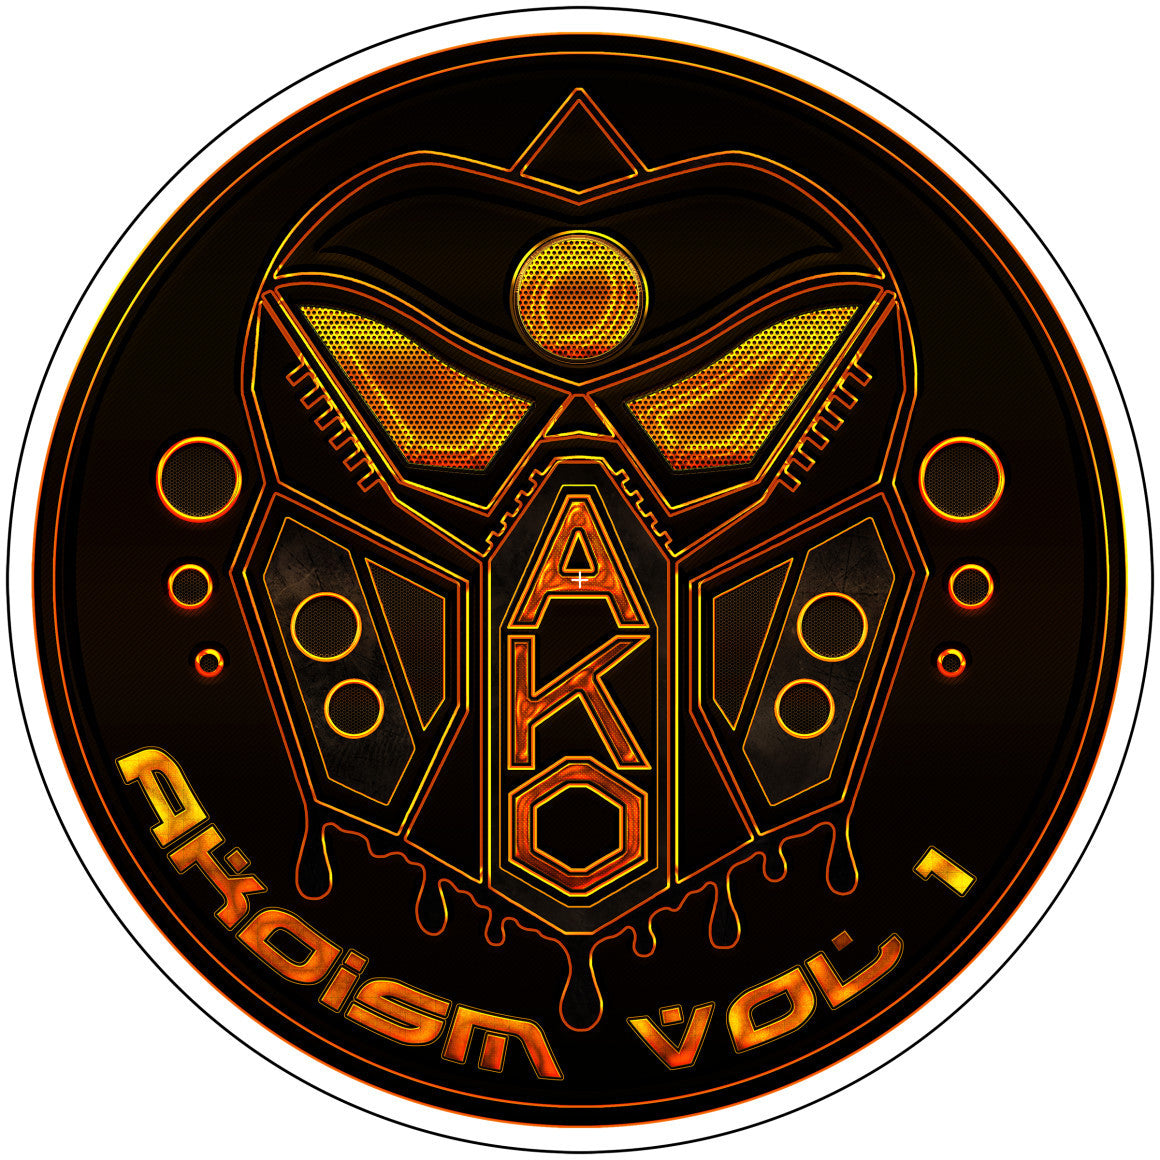 DJ Stretch Presents Akoism Volume 1 , Vinyl - AKO Beatz, Unearthed Sounds